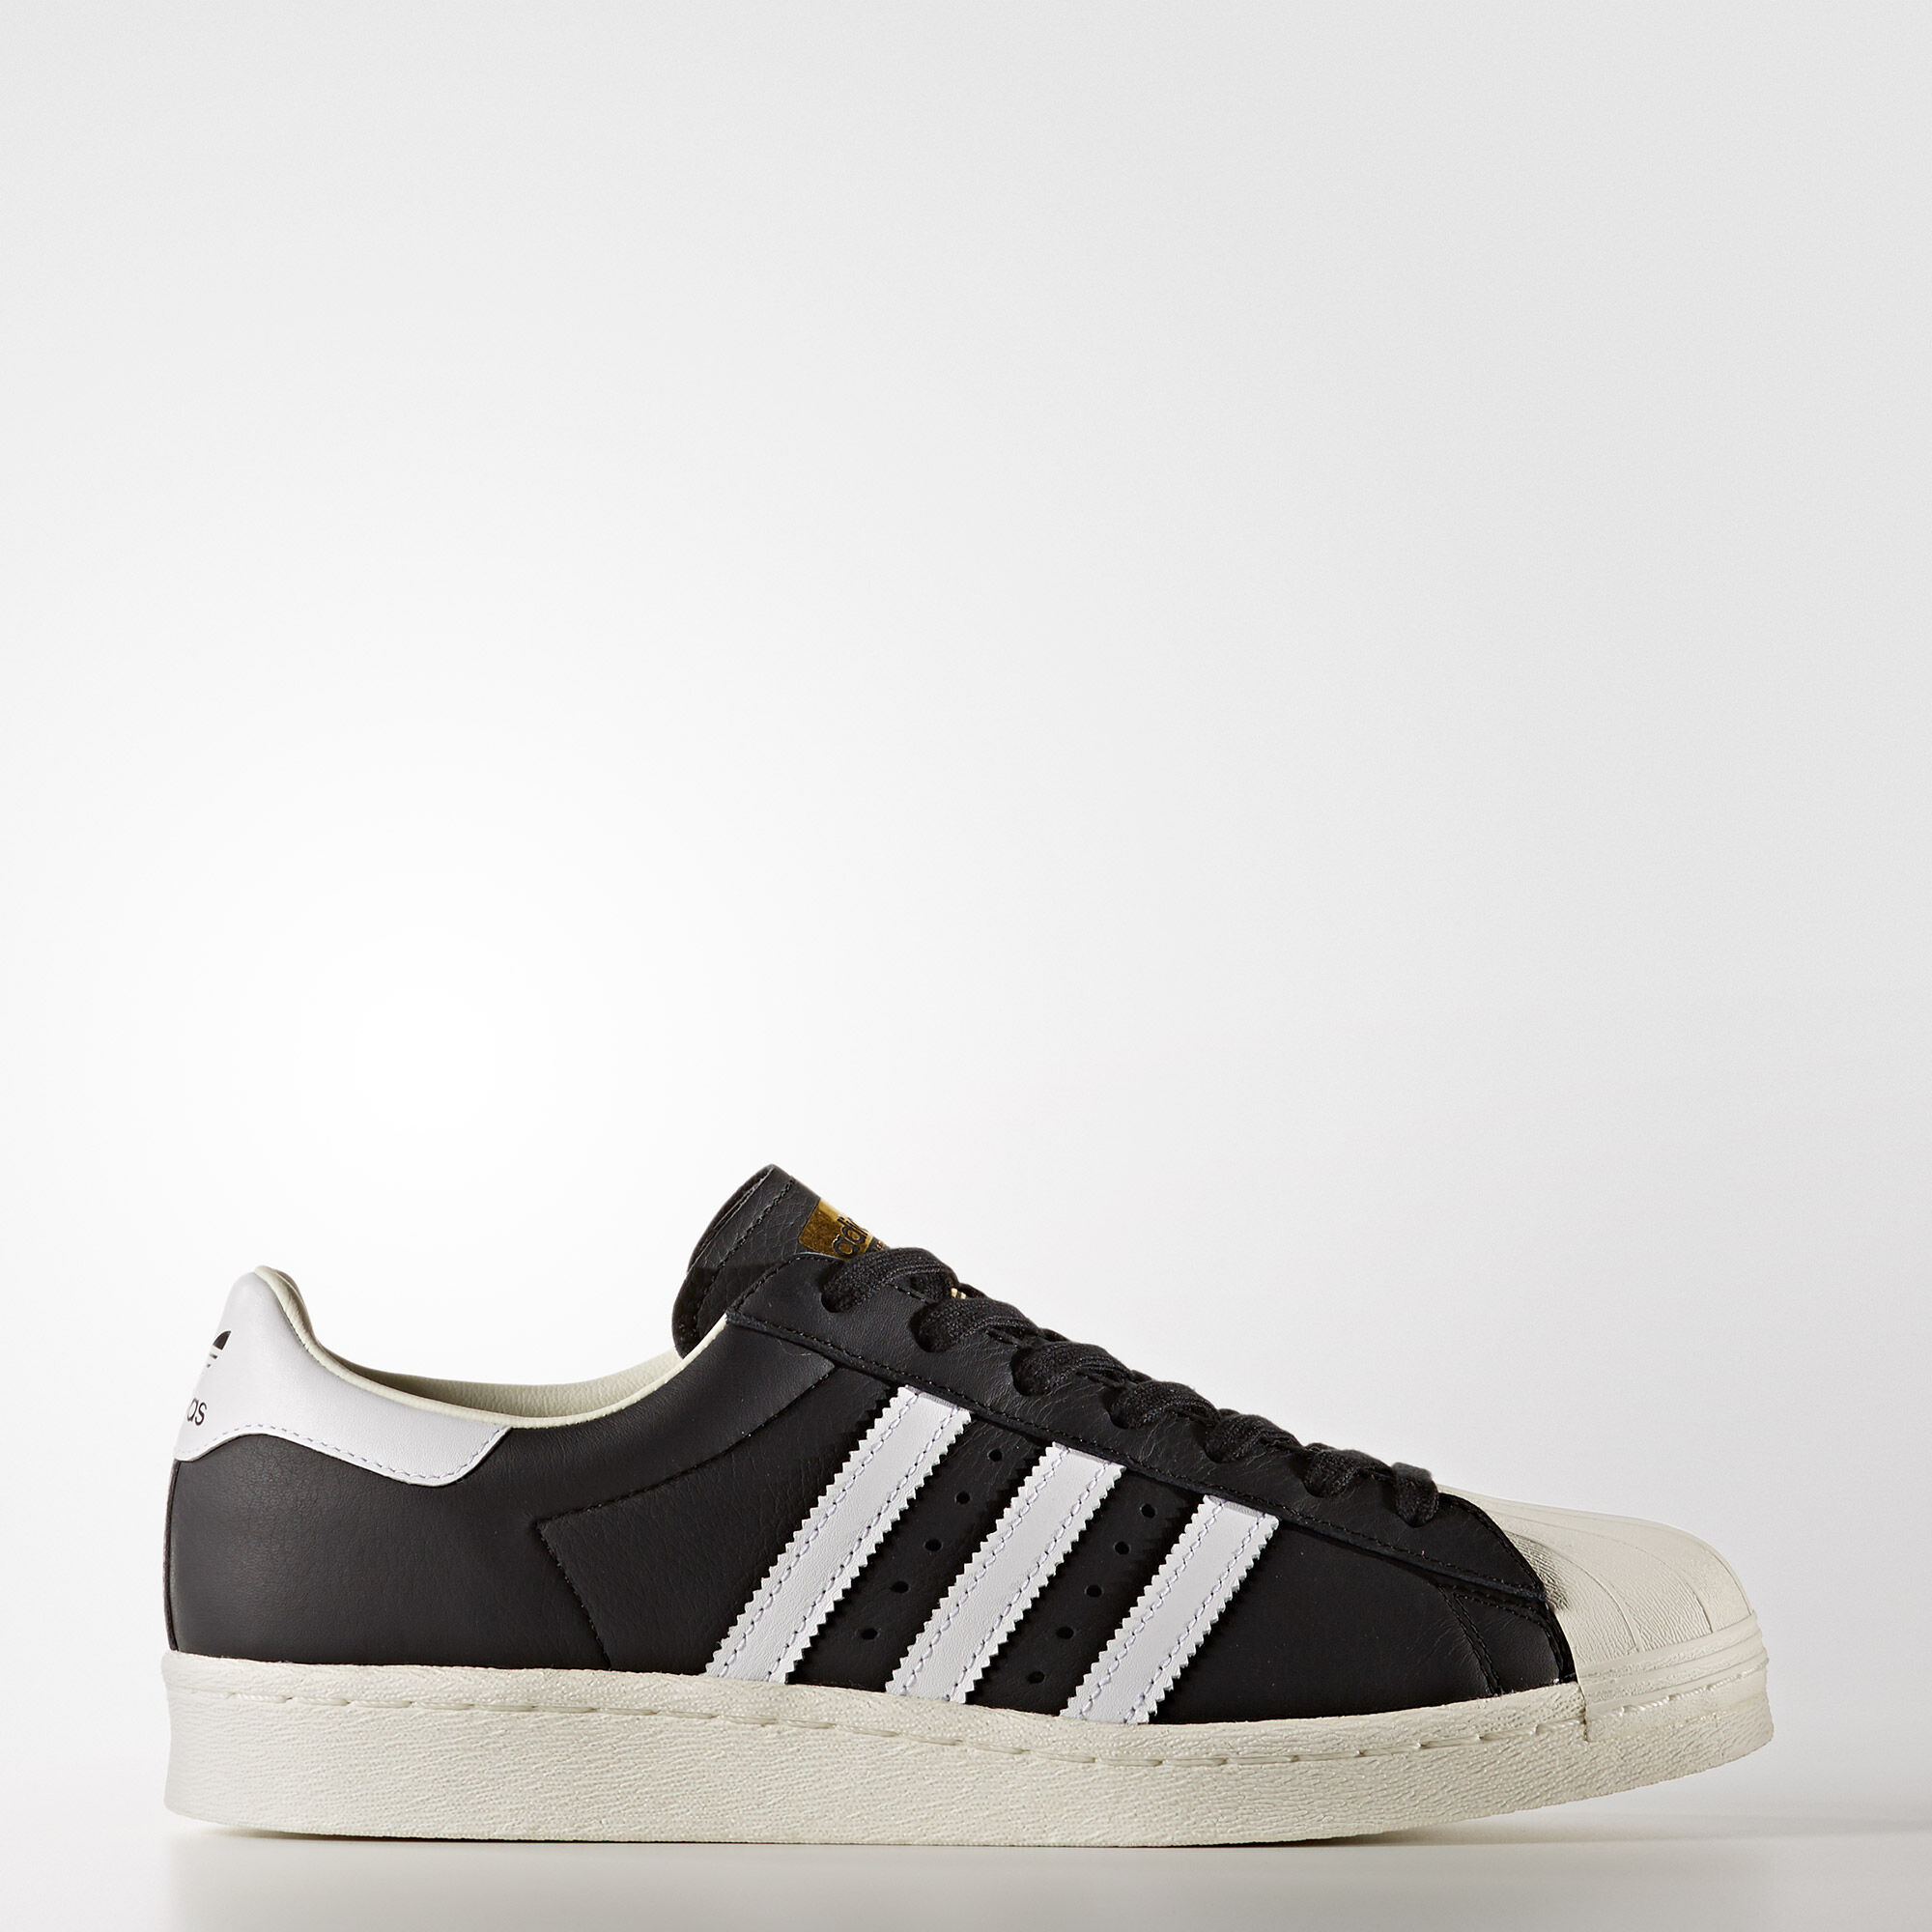 adidas Superstar Boost Shoes Core Black Running White Ftw Gold Metallic BB0189